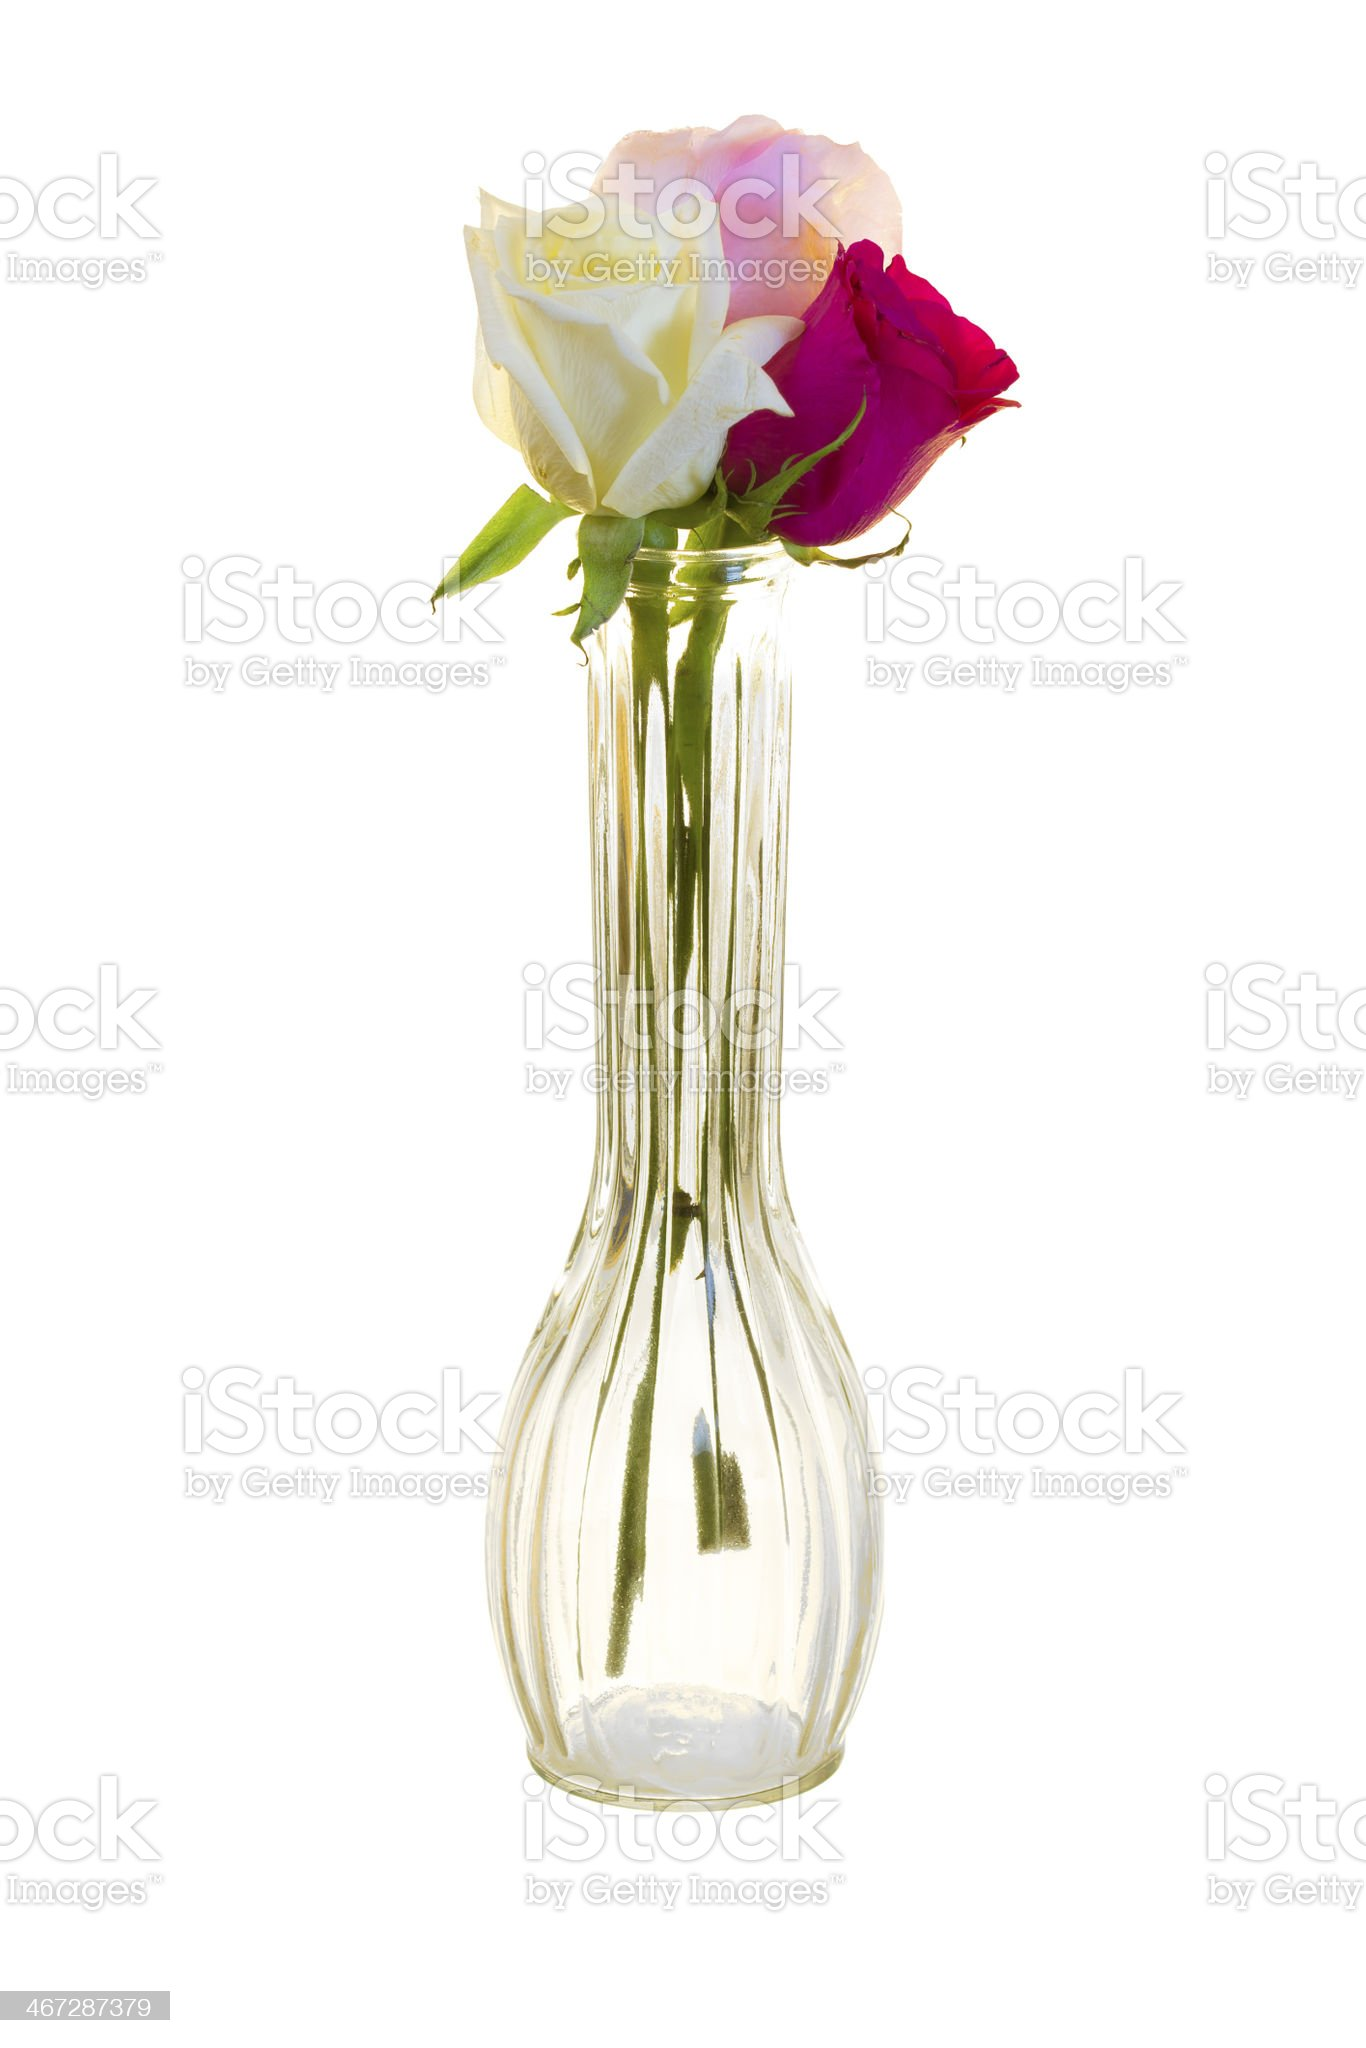 Three Roses in a Vase royalty-free stock photo